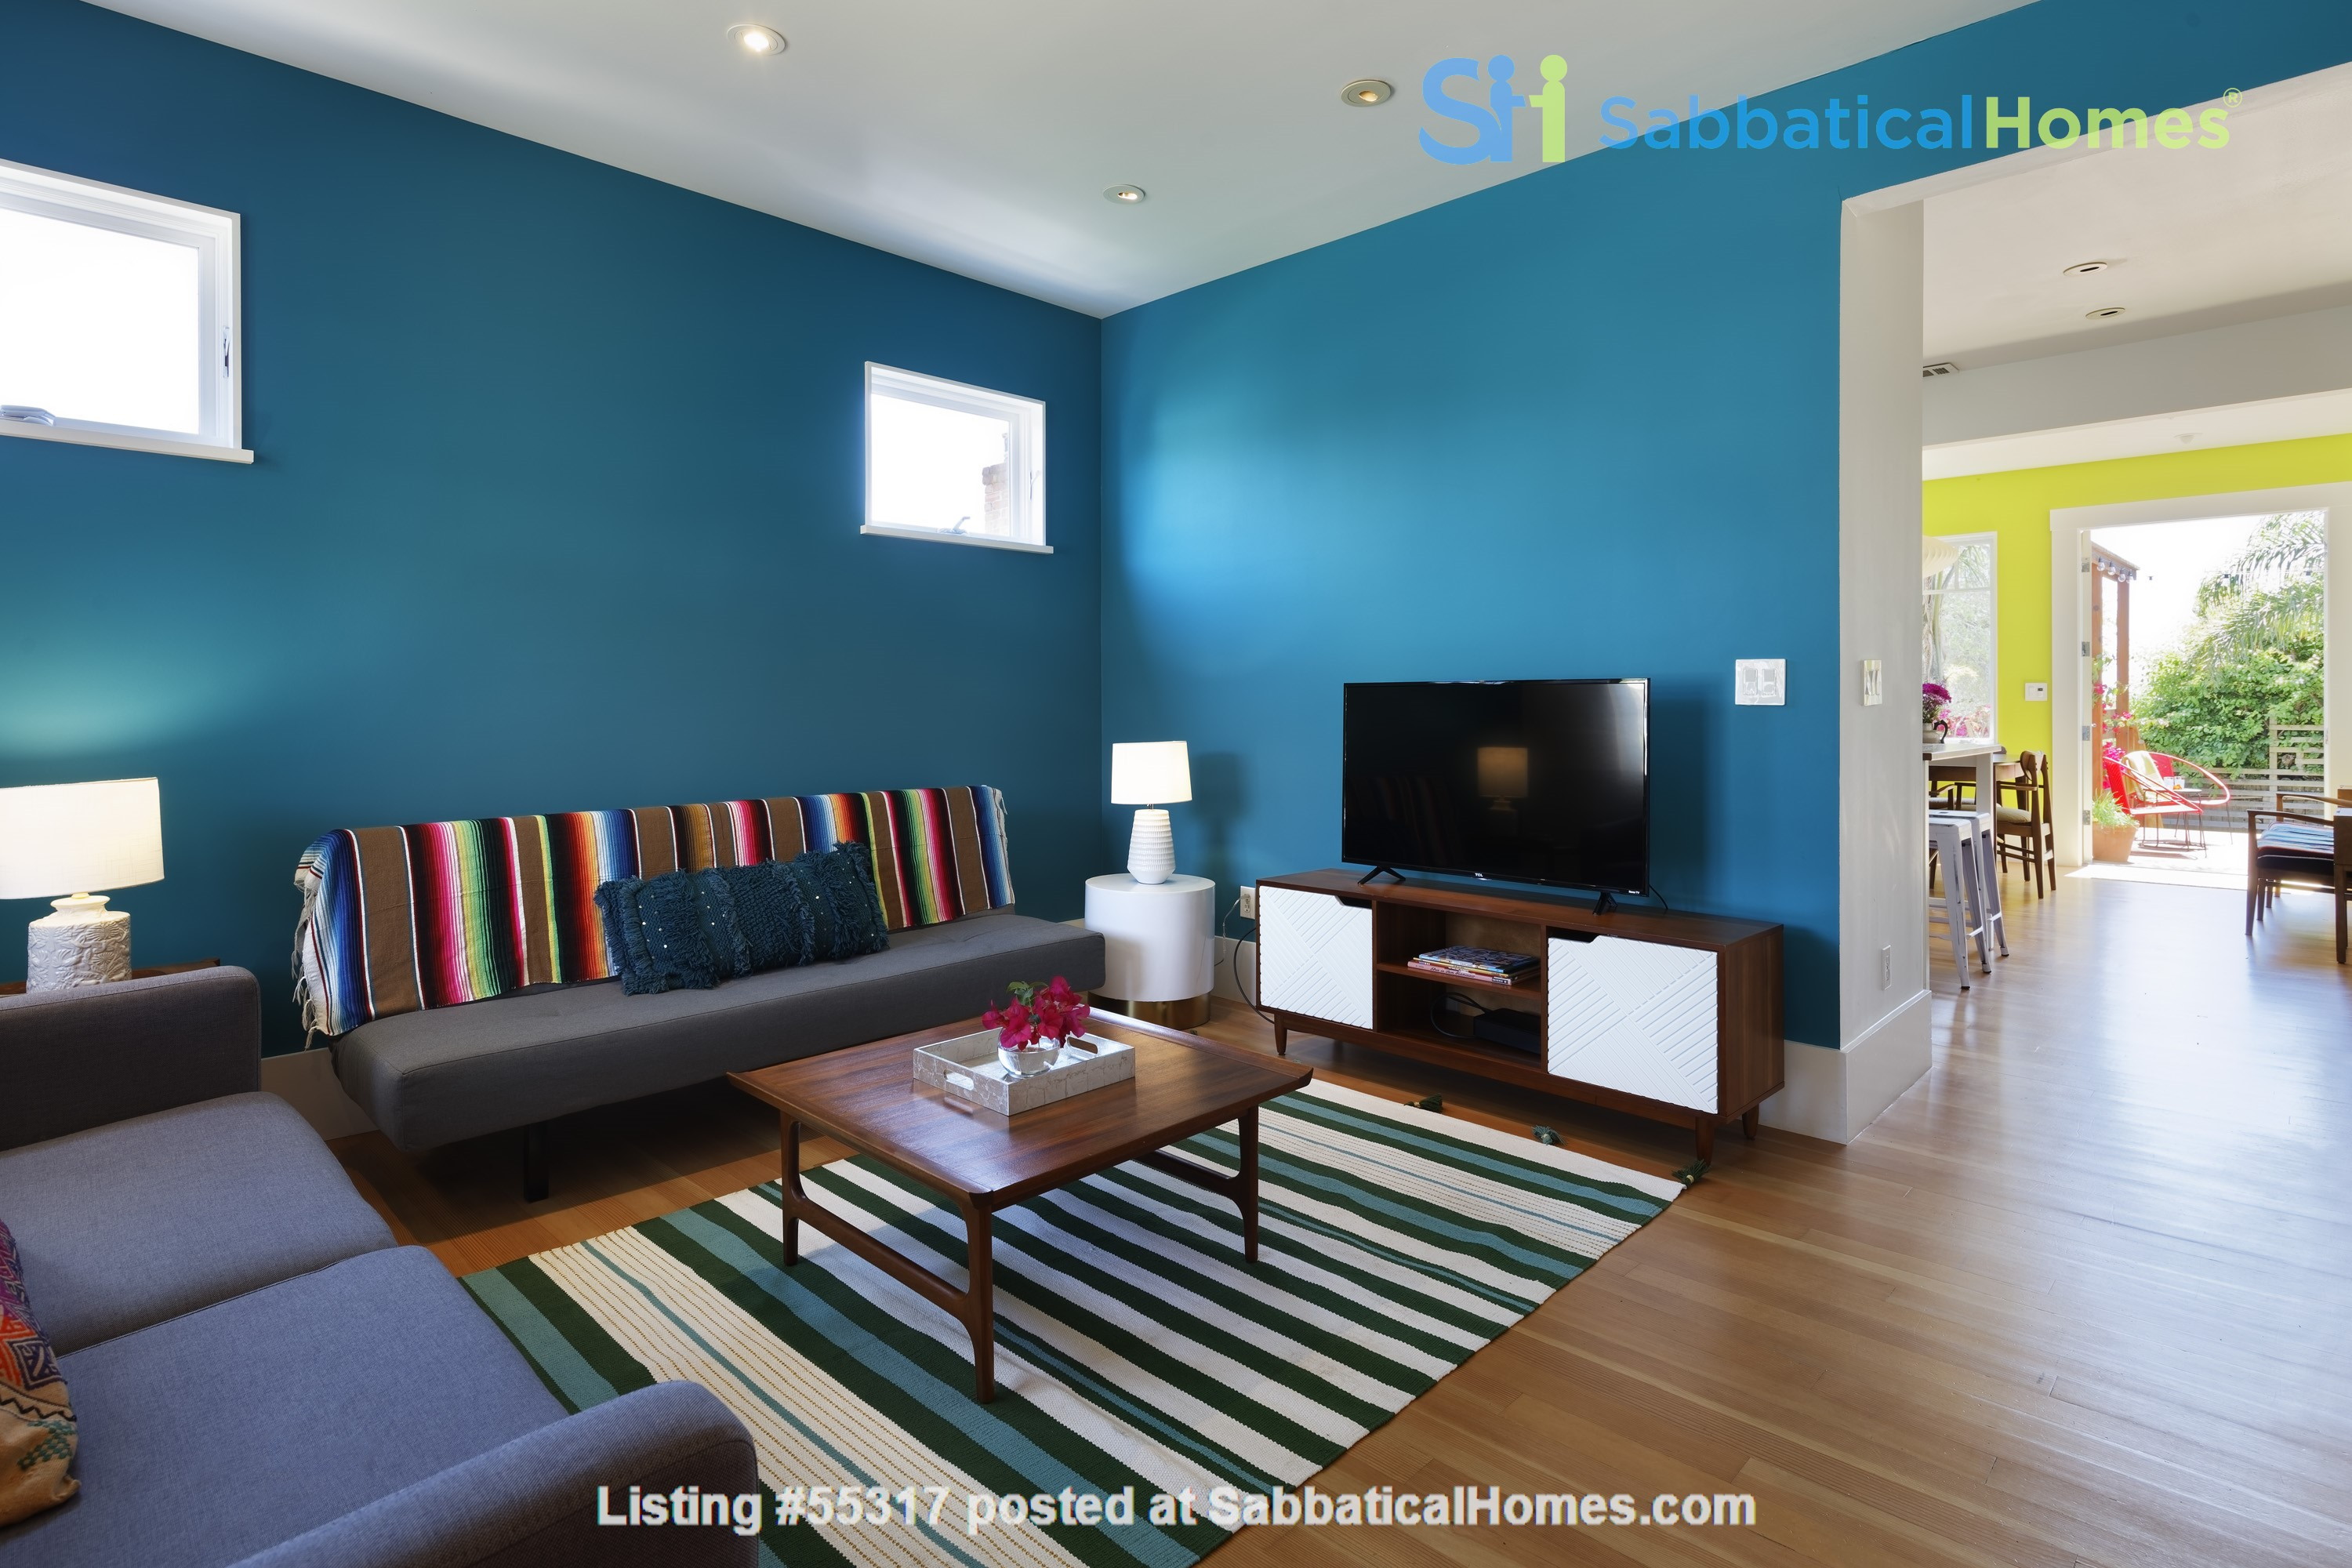 TROPICAL MODERN BUNGALOW- Oakland house near shops and hiking trails Home Rental in Oakland, California, United States 4